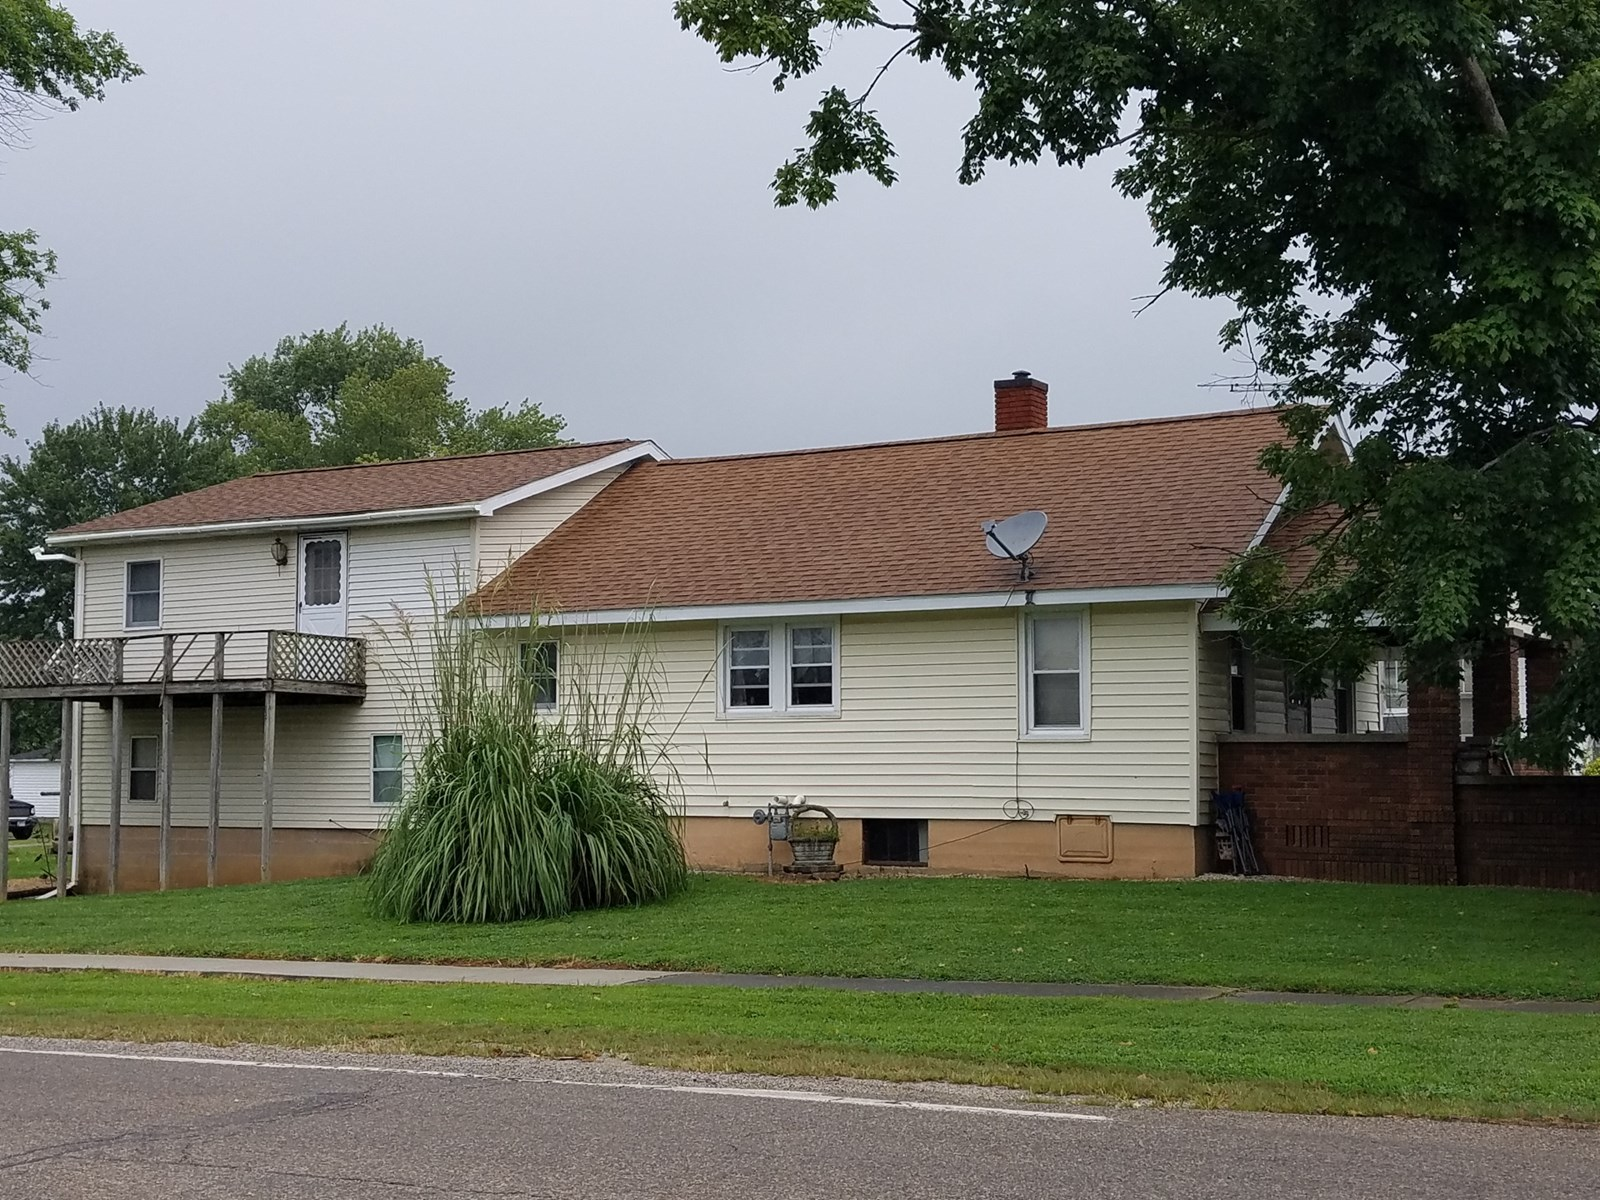 3 Bedroom, 2 Bath Home, Flat Rock, IL